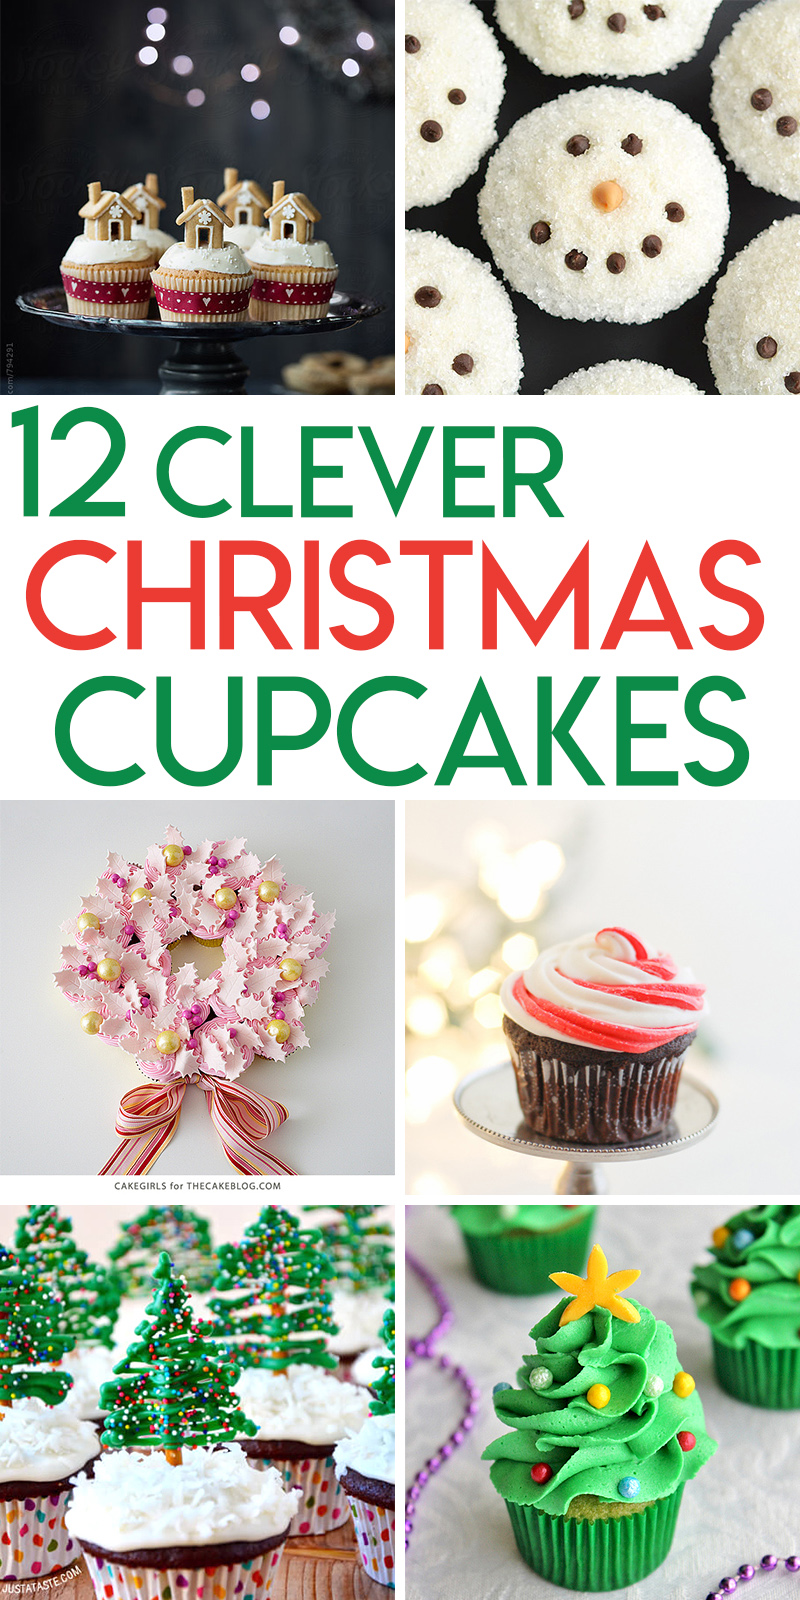 12 clever Christmas cupcake tutorials and ideas.